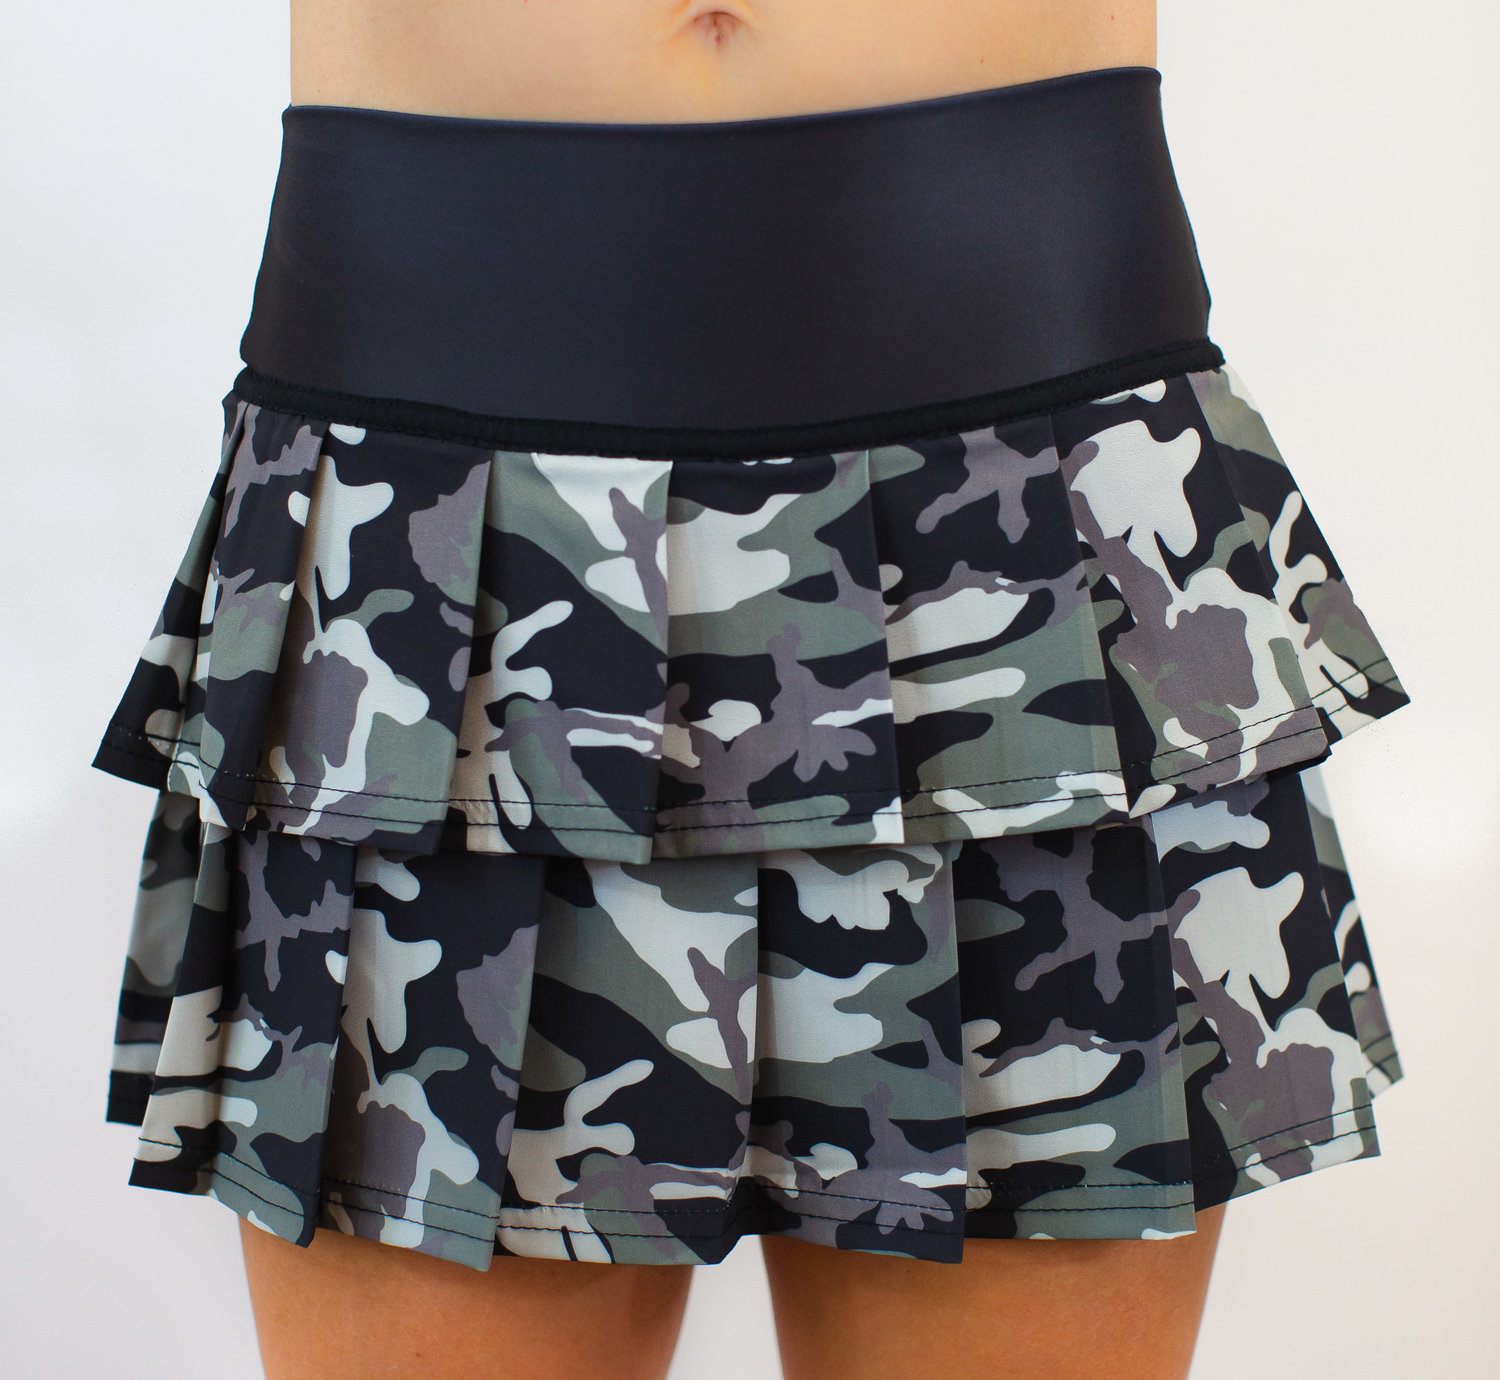 Faye+Florie Piped Racer Tennis Shirt Camo, X-Small